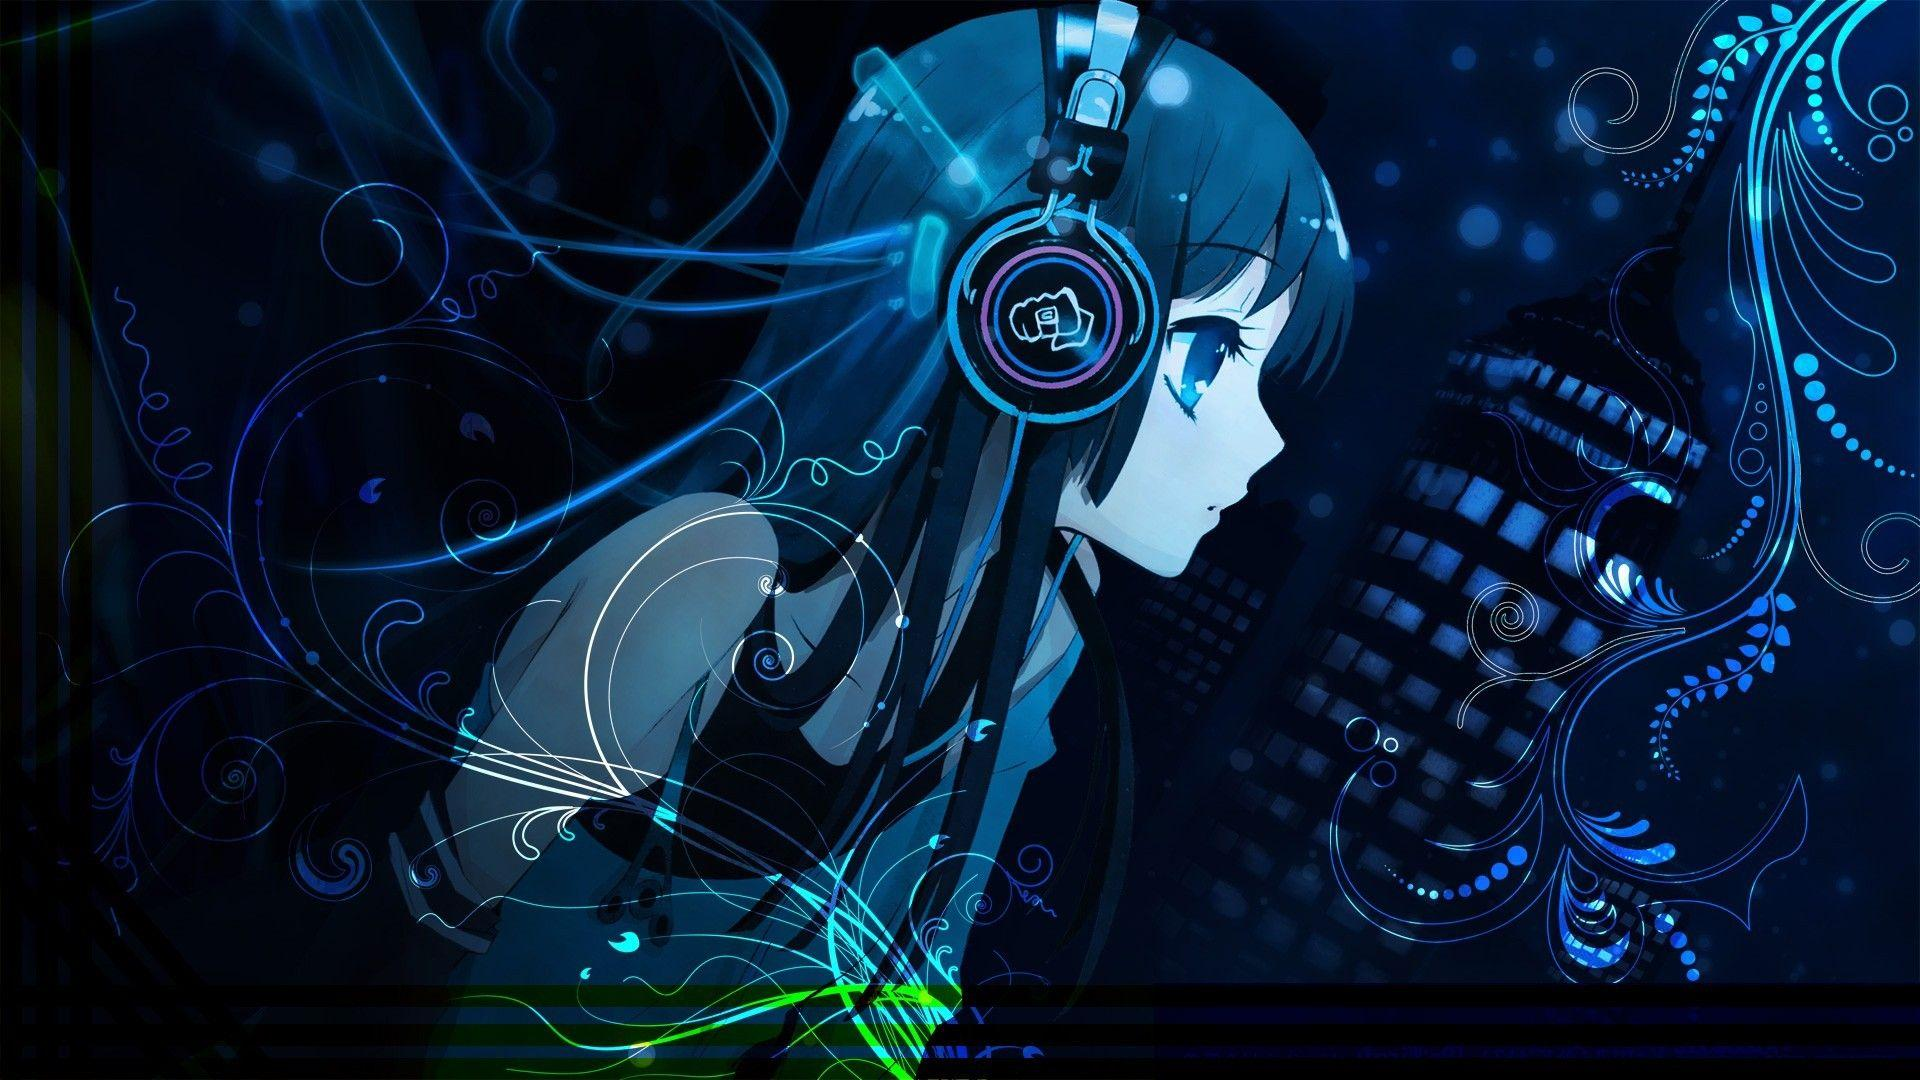 Anime Music Girl Wallpapers in high Quality Anime Wide HD